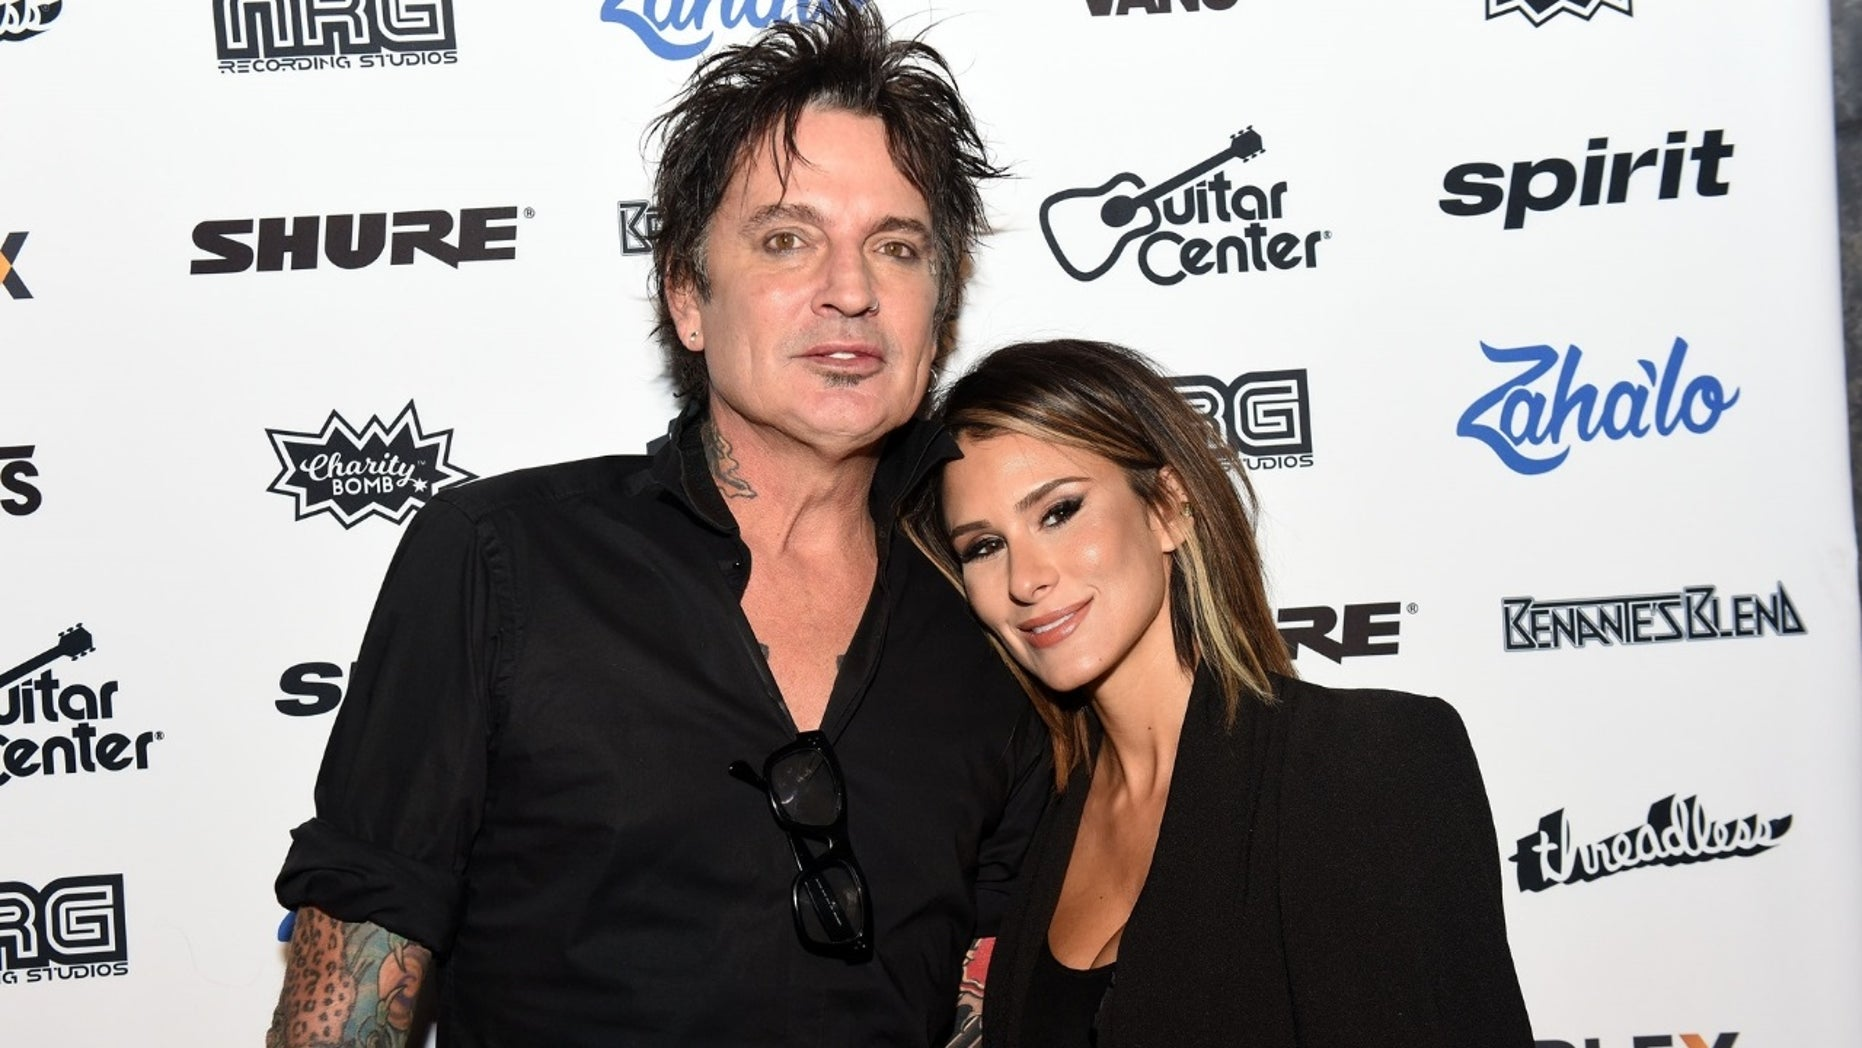 Mötley Crüe drummer Tommy Lee and internet personality Brittany Furlan tied the knot on Valentine's Day, a year after they announced their engagement.